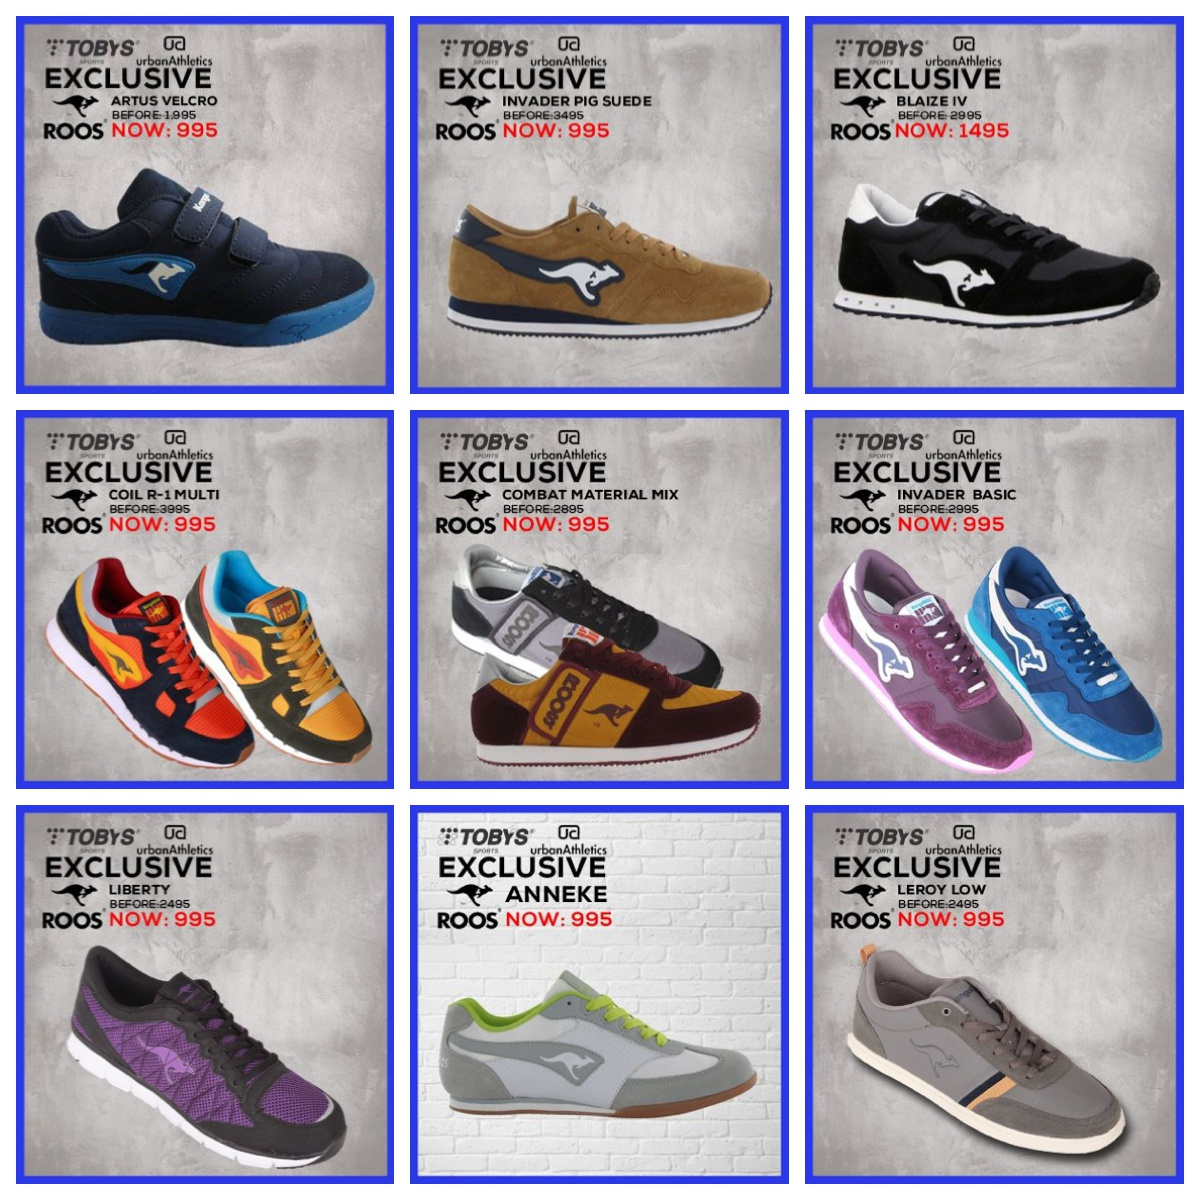 5374229d61 Roos Sale at Toby's Sports | Analykix